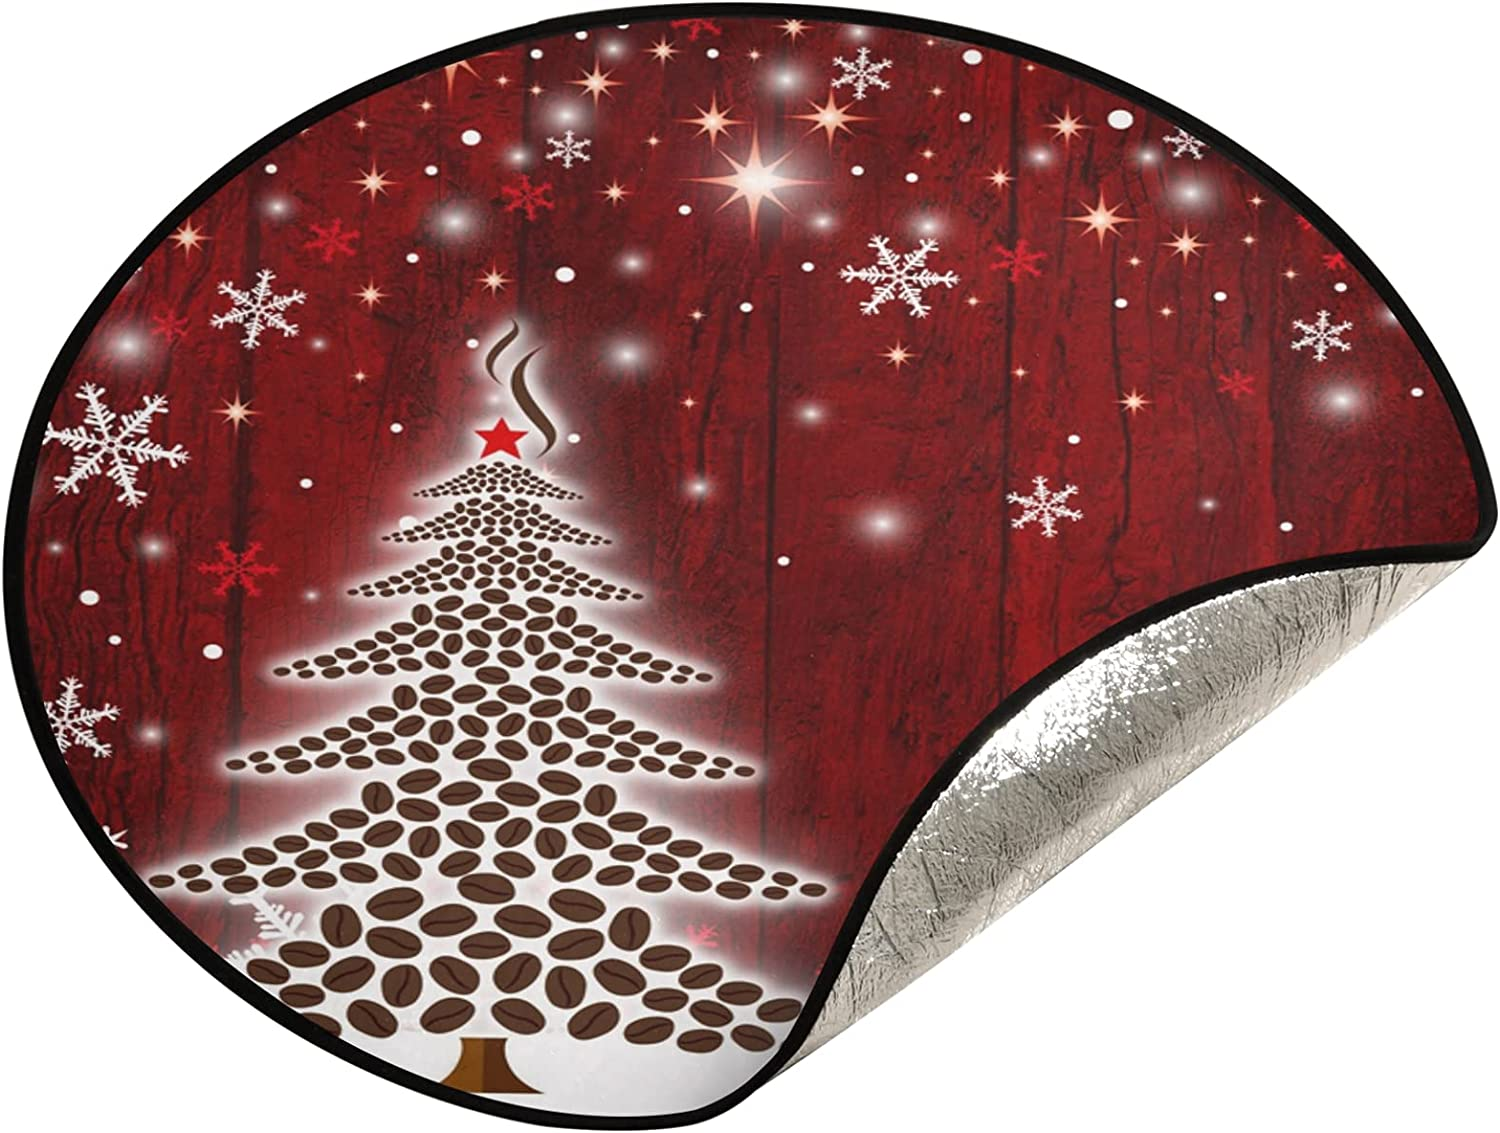 xigua 28.3 Inch Christmas Max 87% OFF Tree Stand Merry trust Mat -